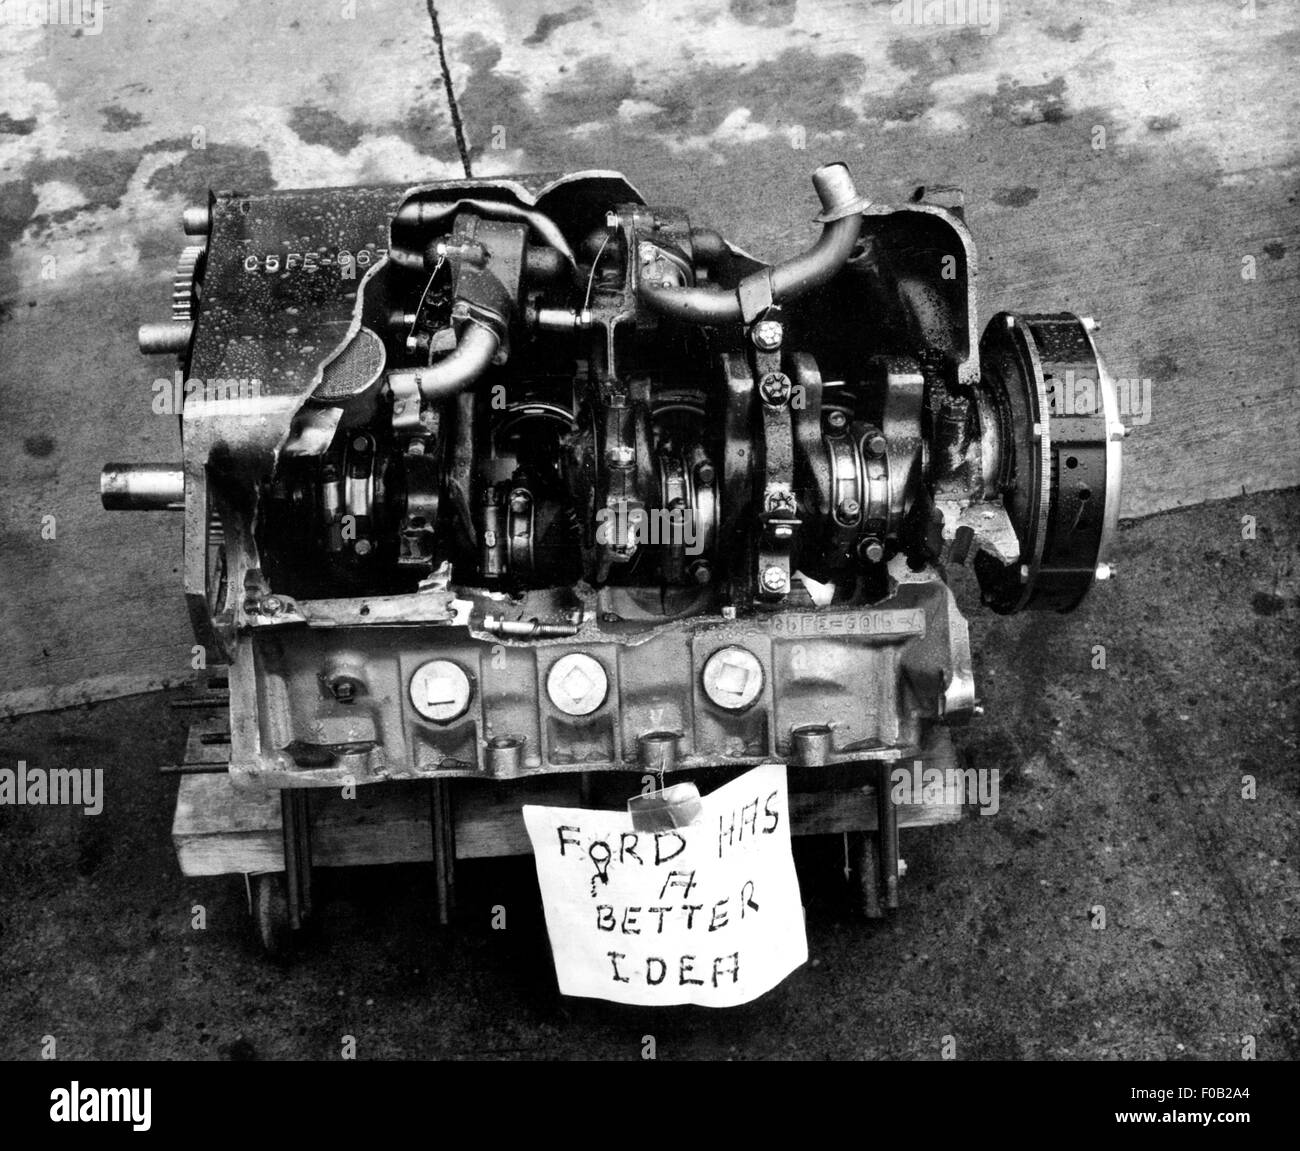 a blown ford v8 engine 1968 - stock image